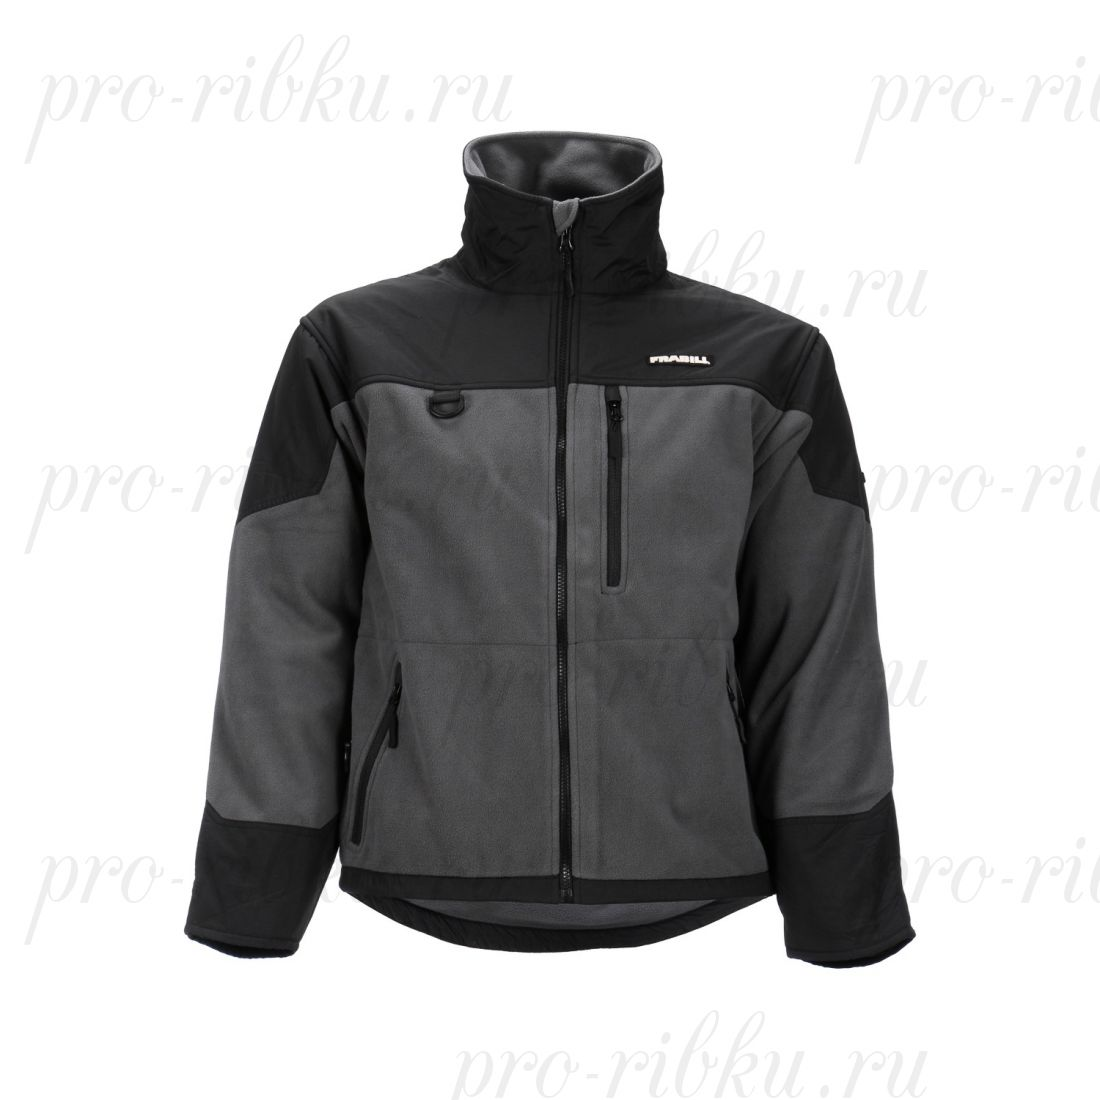 Куртка флисовая Frabill FXE WINDPROOF FLEECE Jacket размер 2XL